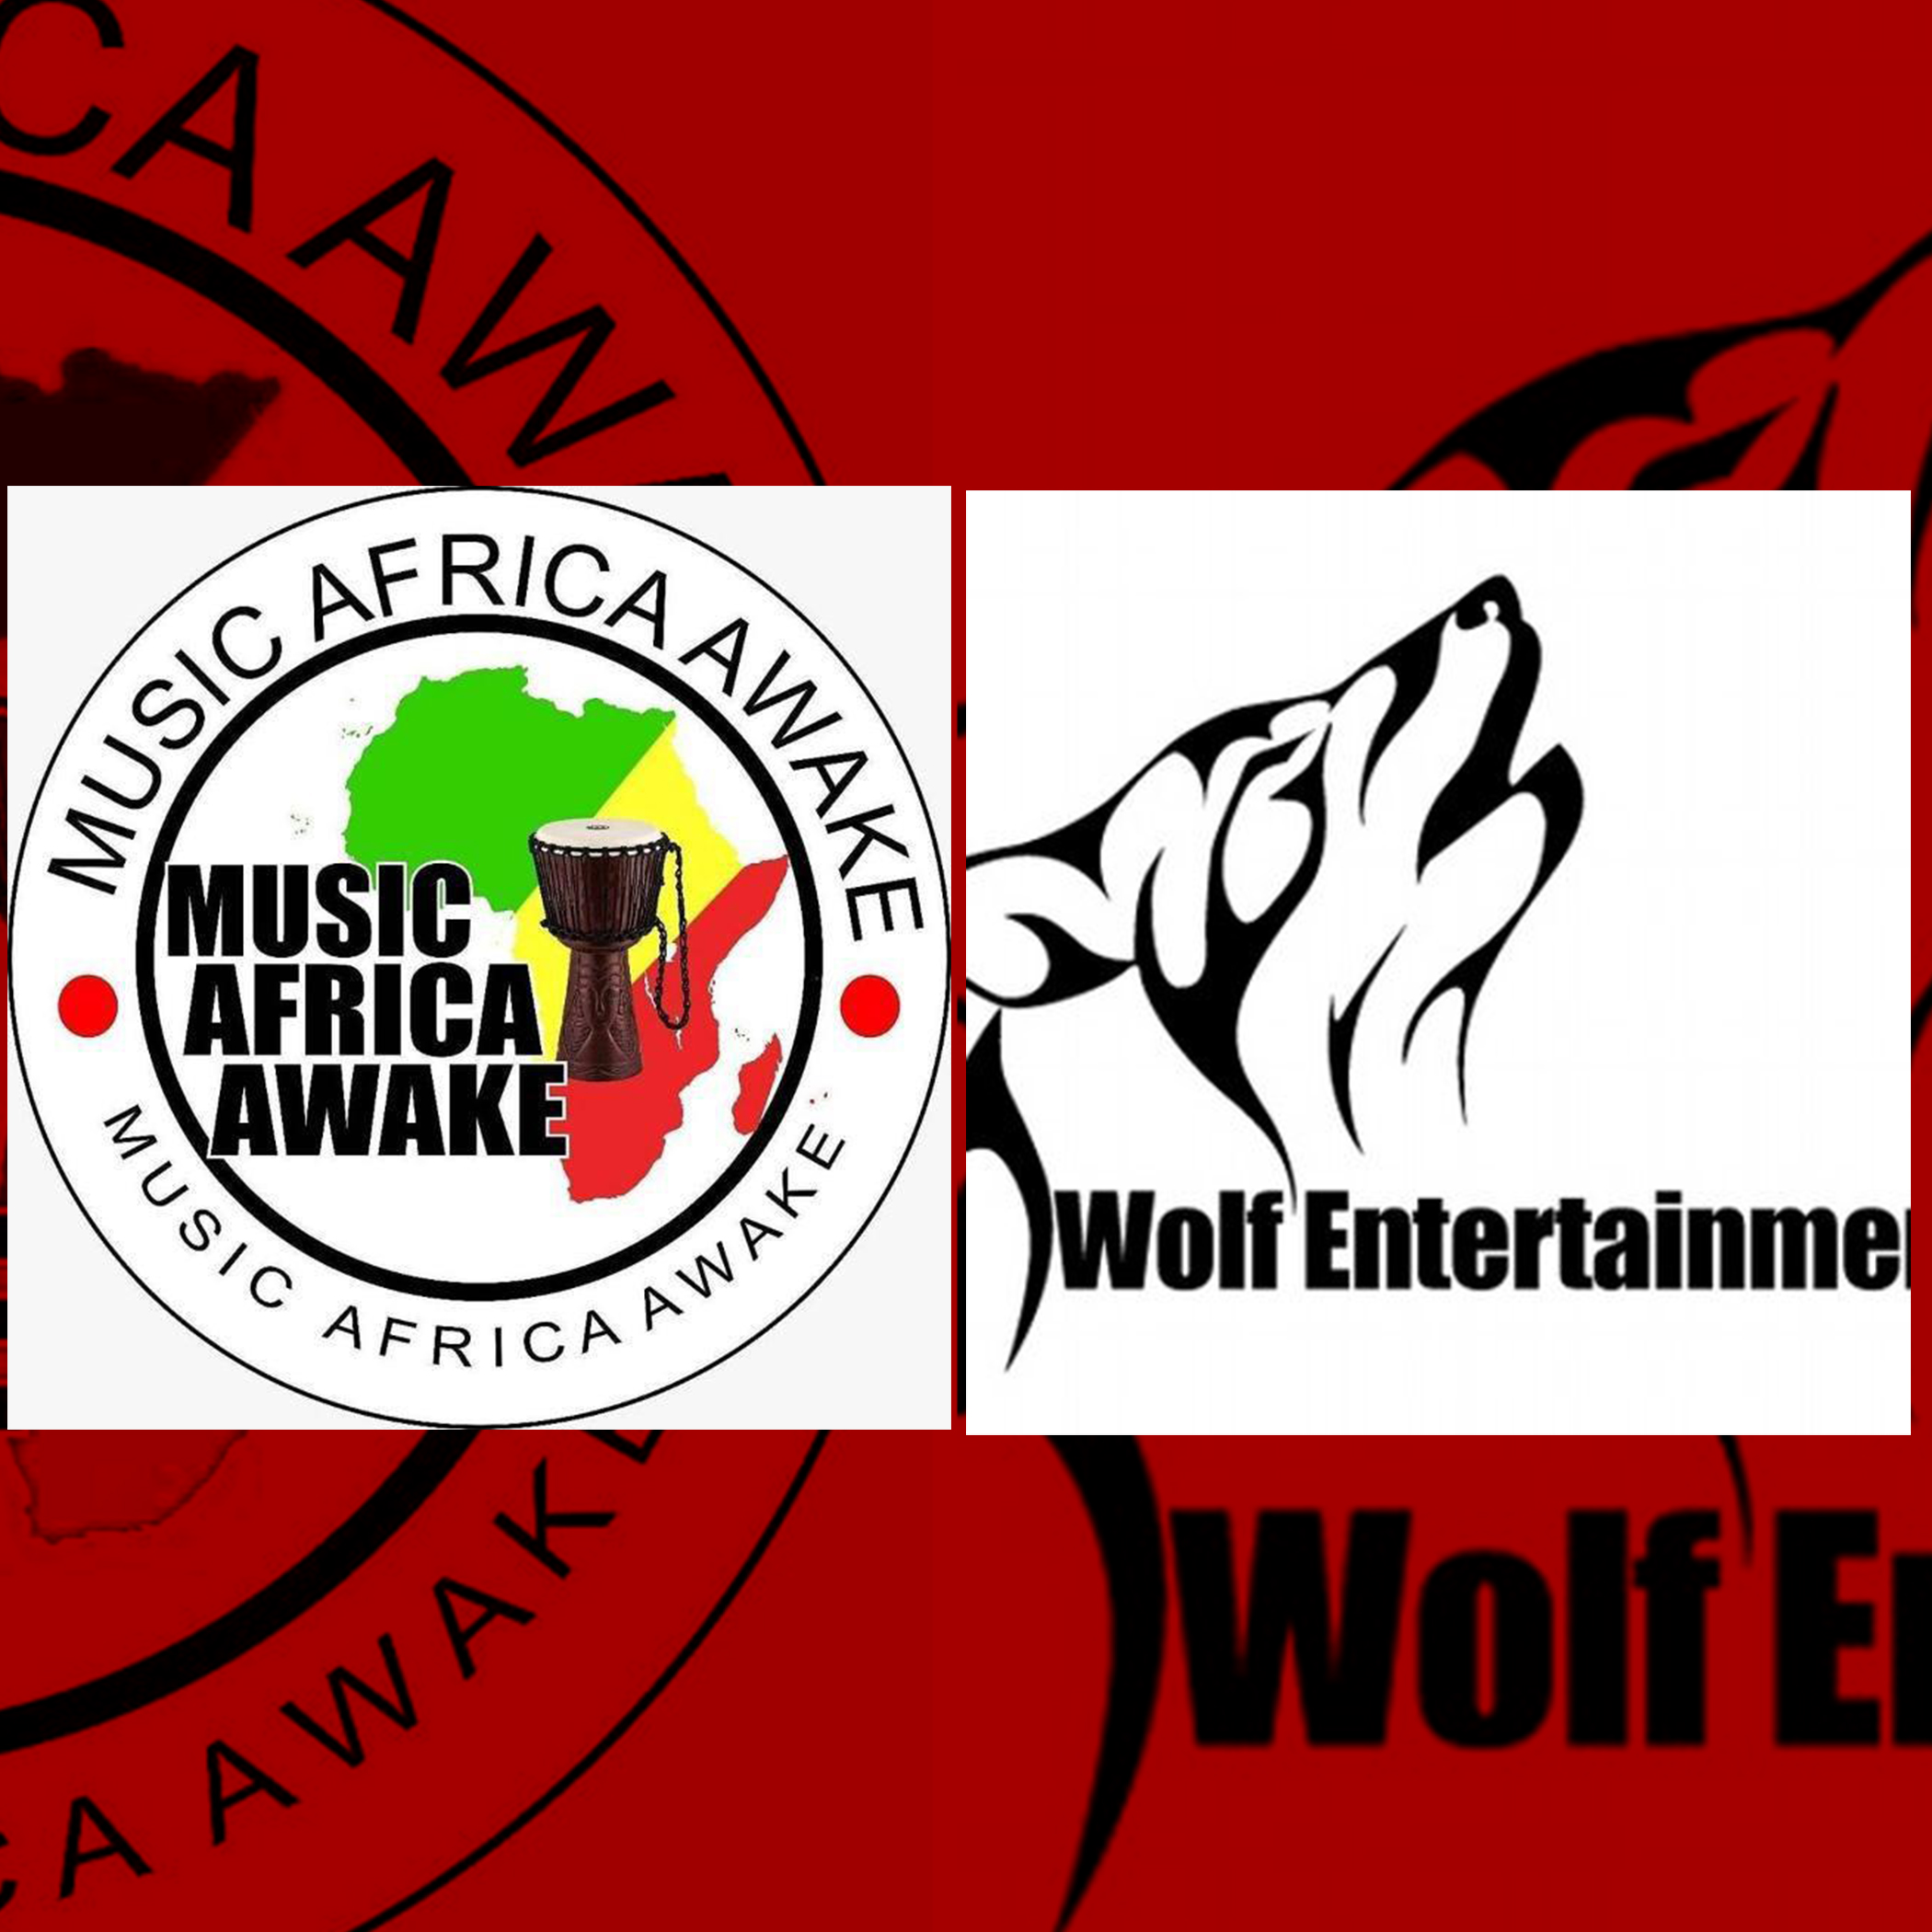 Music Africa Awake & Wolf Entertainment